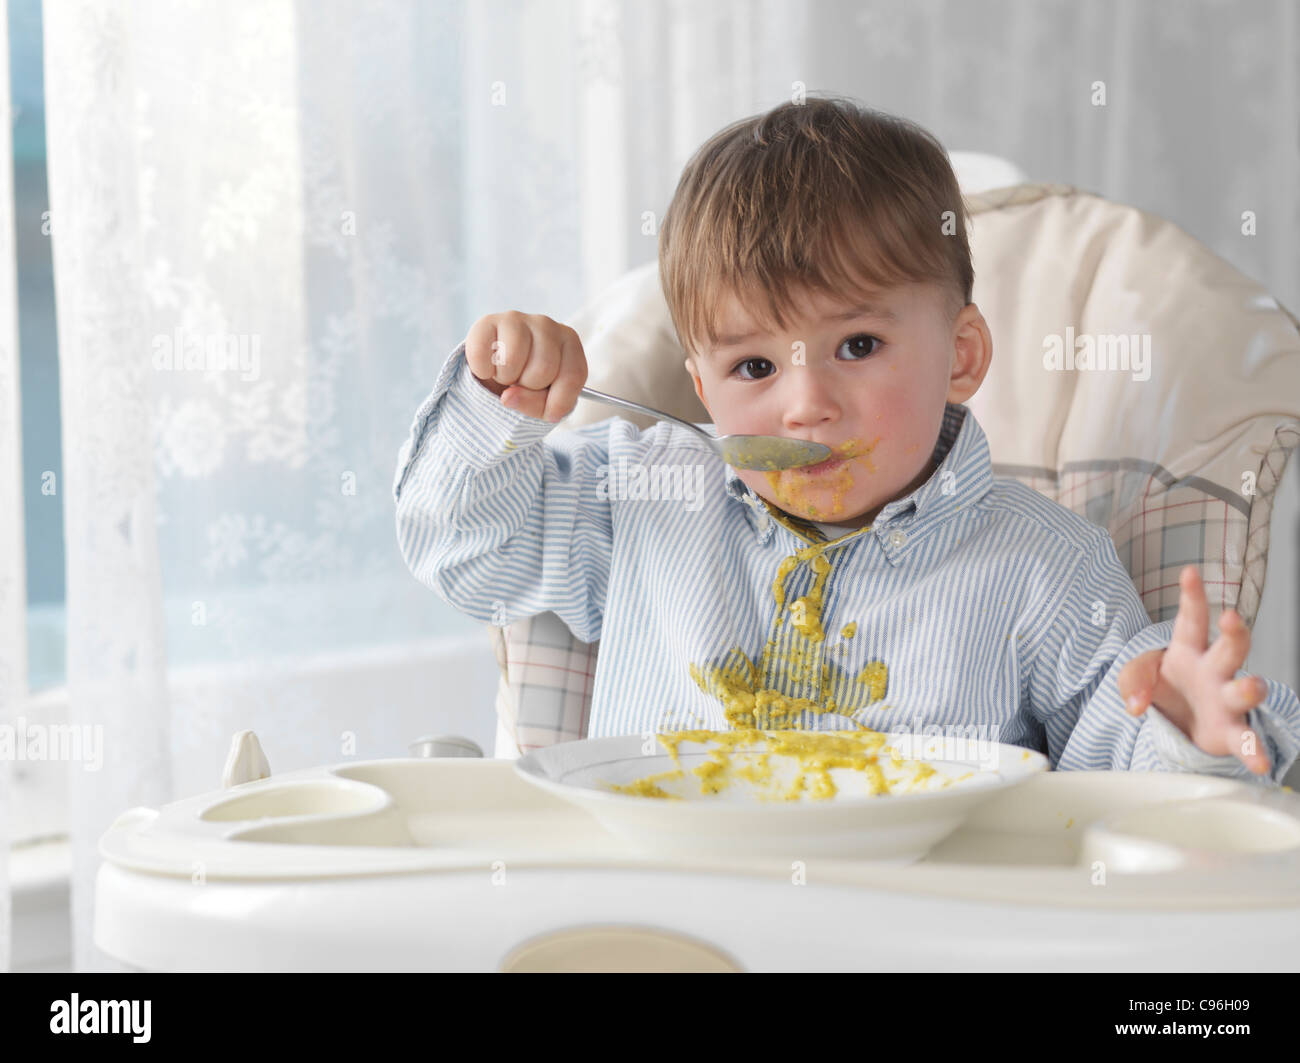 Cute baby boy sitting in a high chair and eating soup with a spoon, spilling it on his shirt - Stock Image